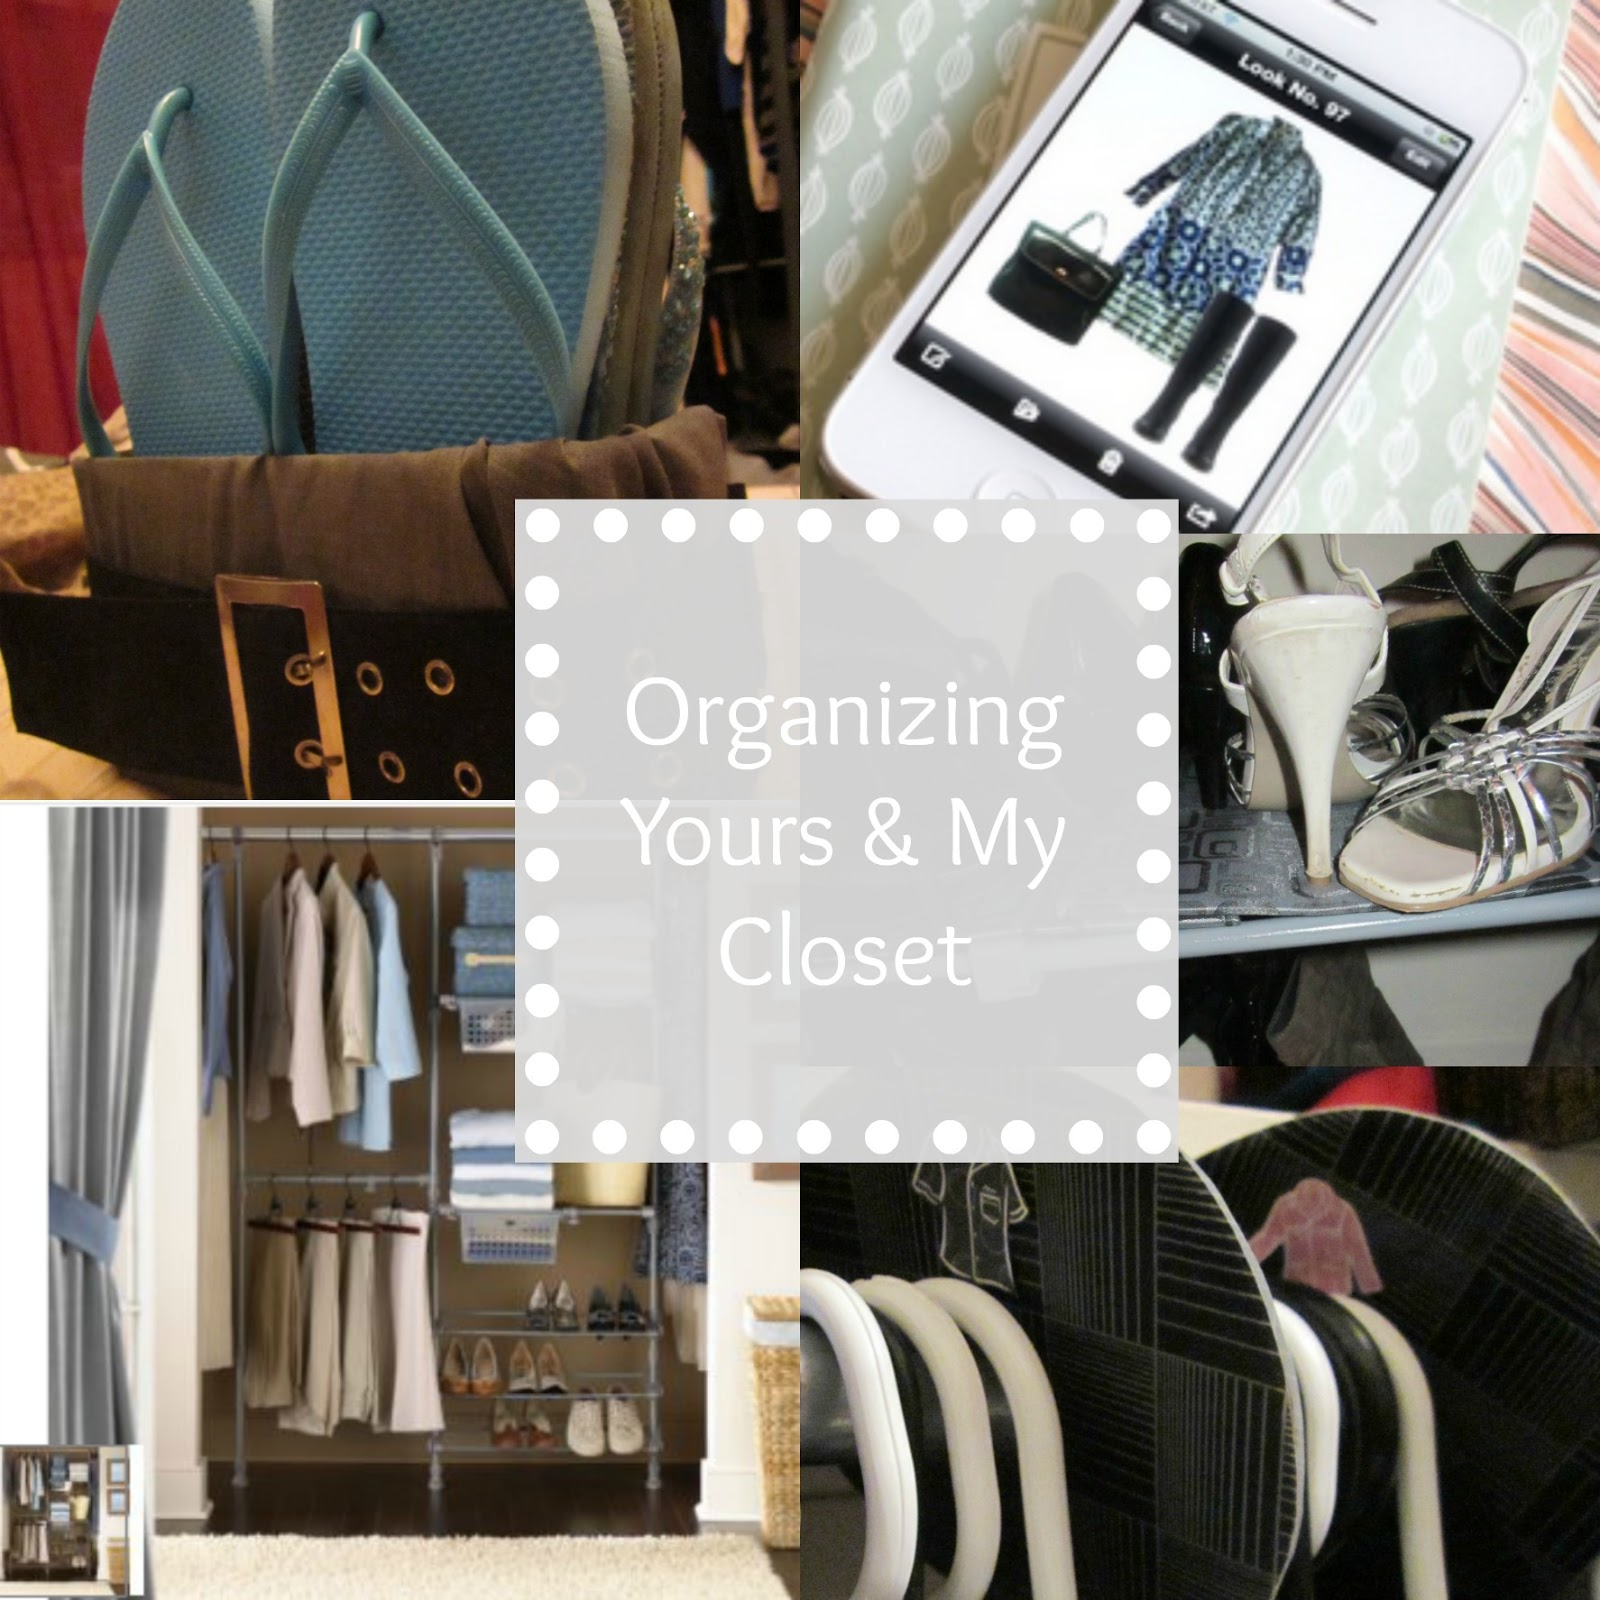 How to Organize the Closet